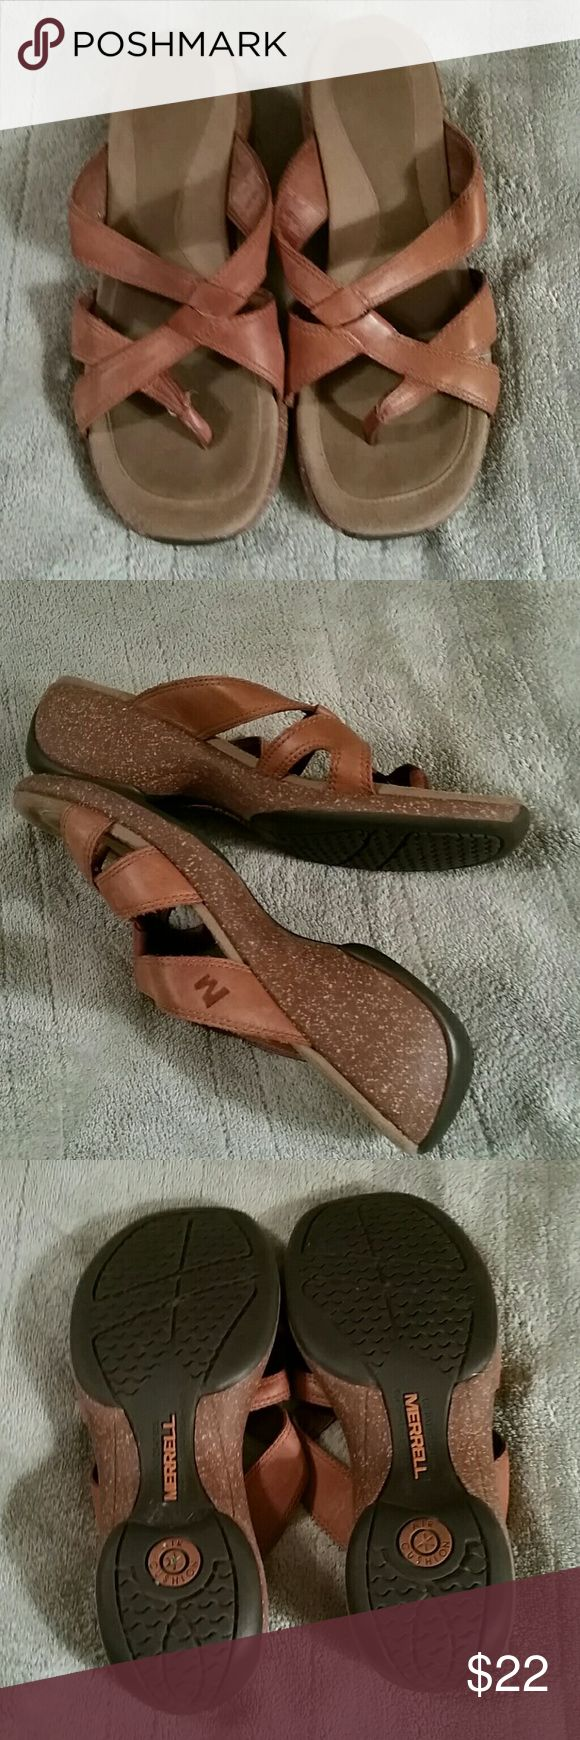 1 DAY SALE MERRILL SANDALS These cute sandals are in preloved condition.  They have some light wear to the footbed but overall in good used condition. They are slip on style , very comfortable.  The size is hard to read but they are true size 6M.  Air cushioned patent. Merrell Shoes Sandals